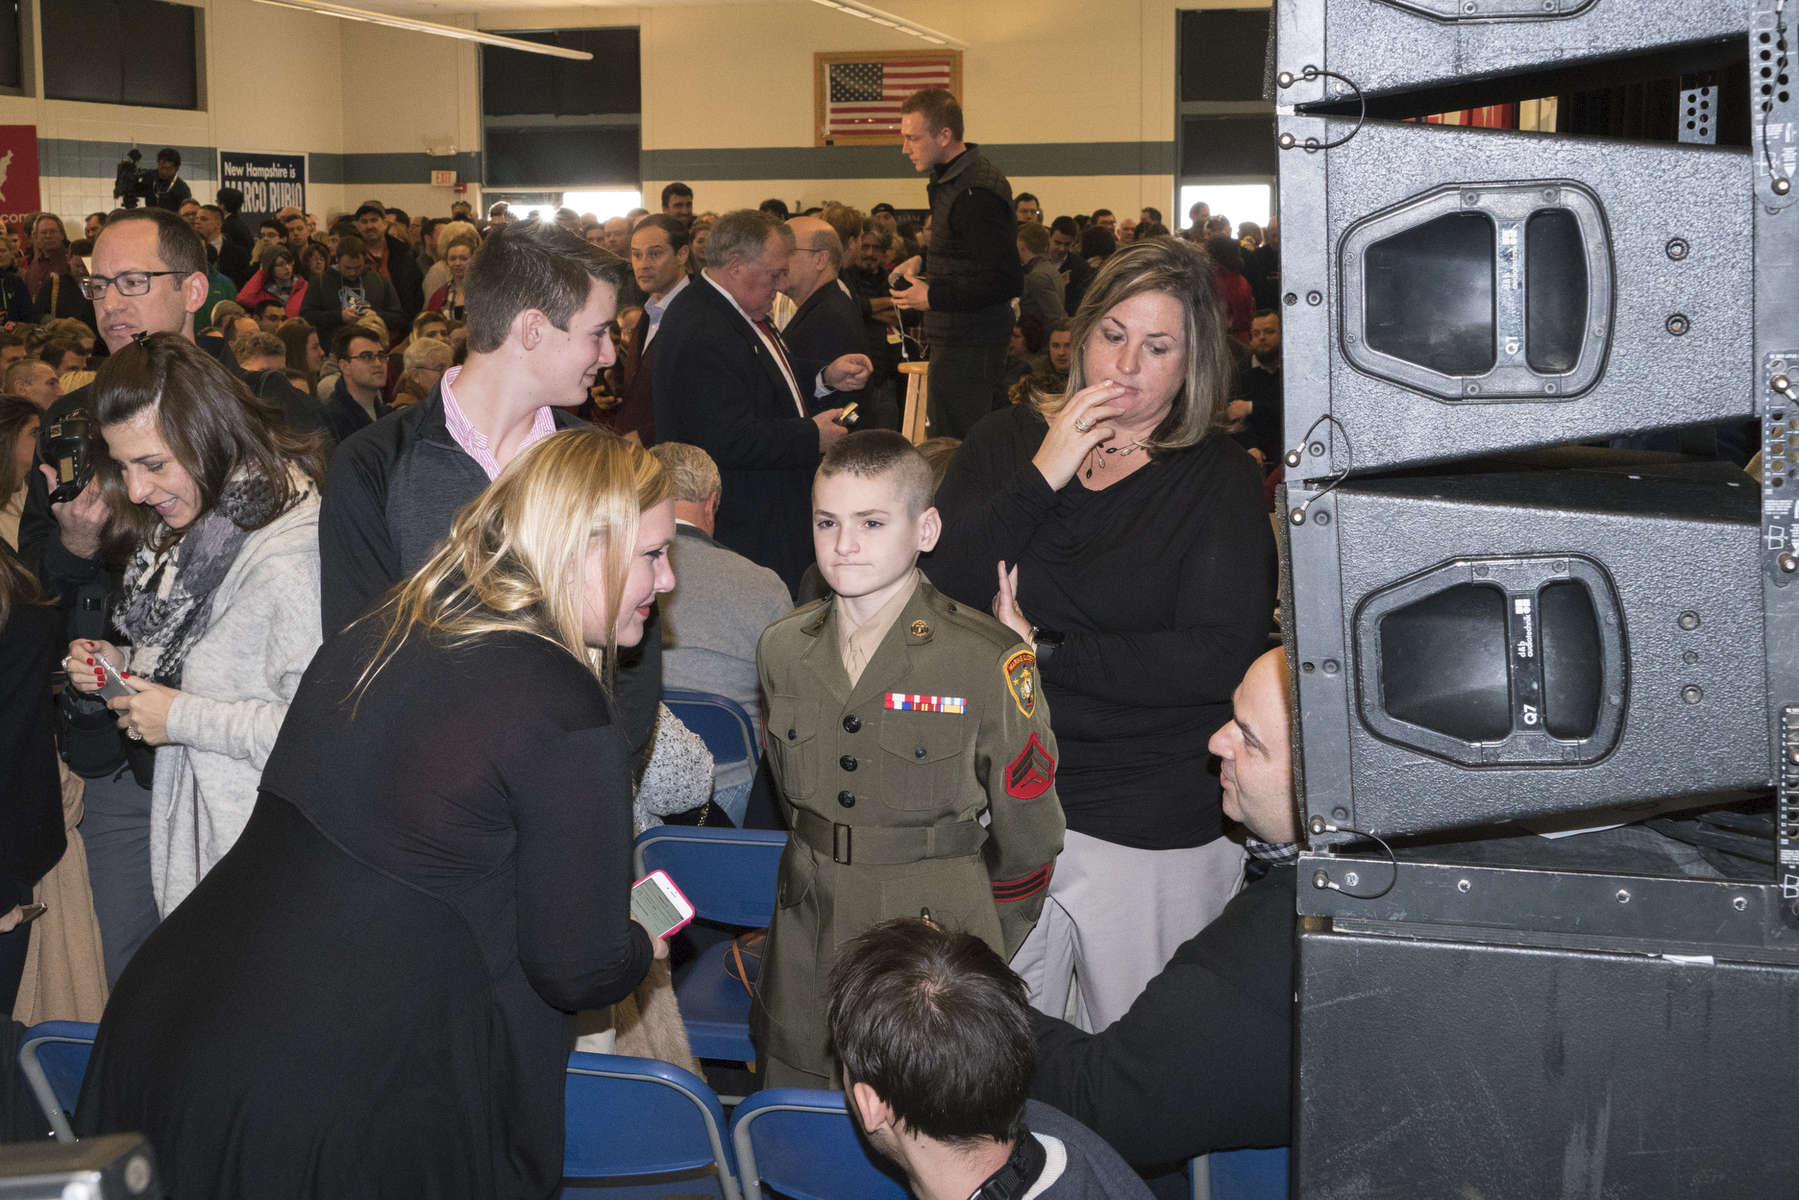 2016.  Londonderry, NH.  USA.  A young Marine cadet at a Marco Rubio rally. Donald Trump ultimately won the Republican primary and Bernie Sanders won the Democratic.